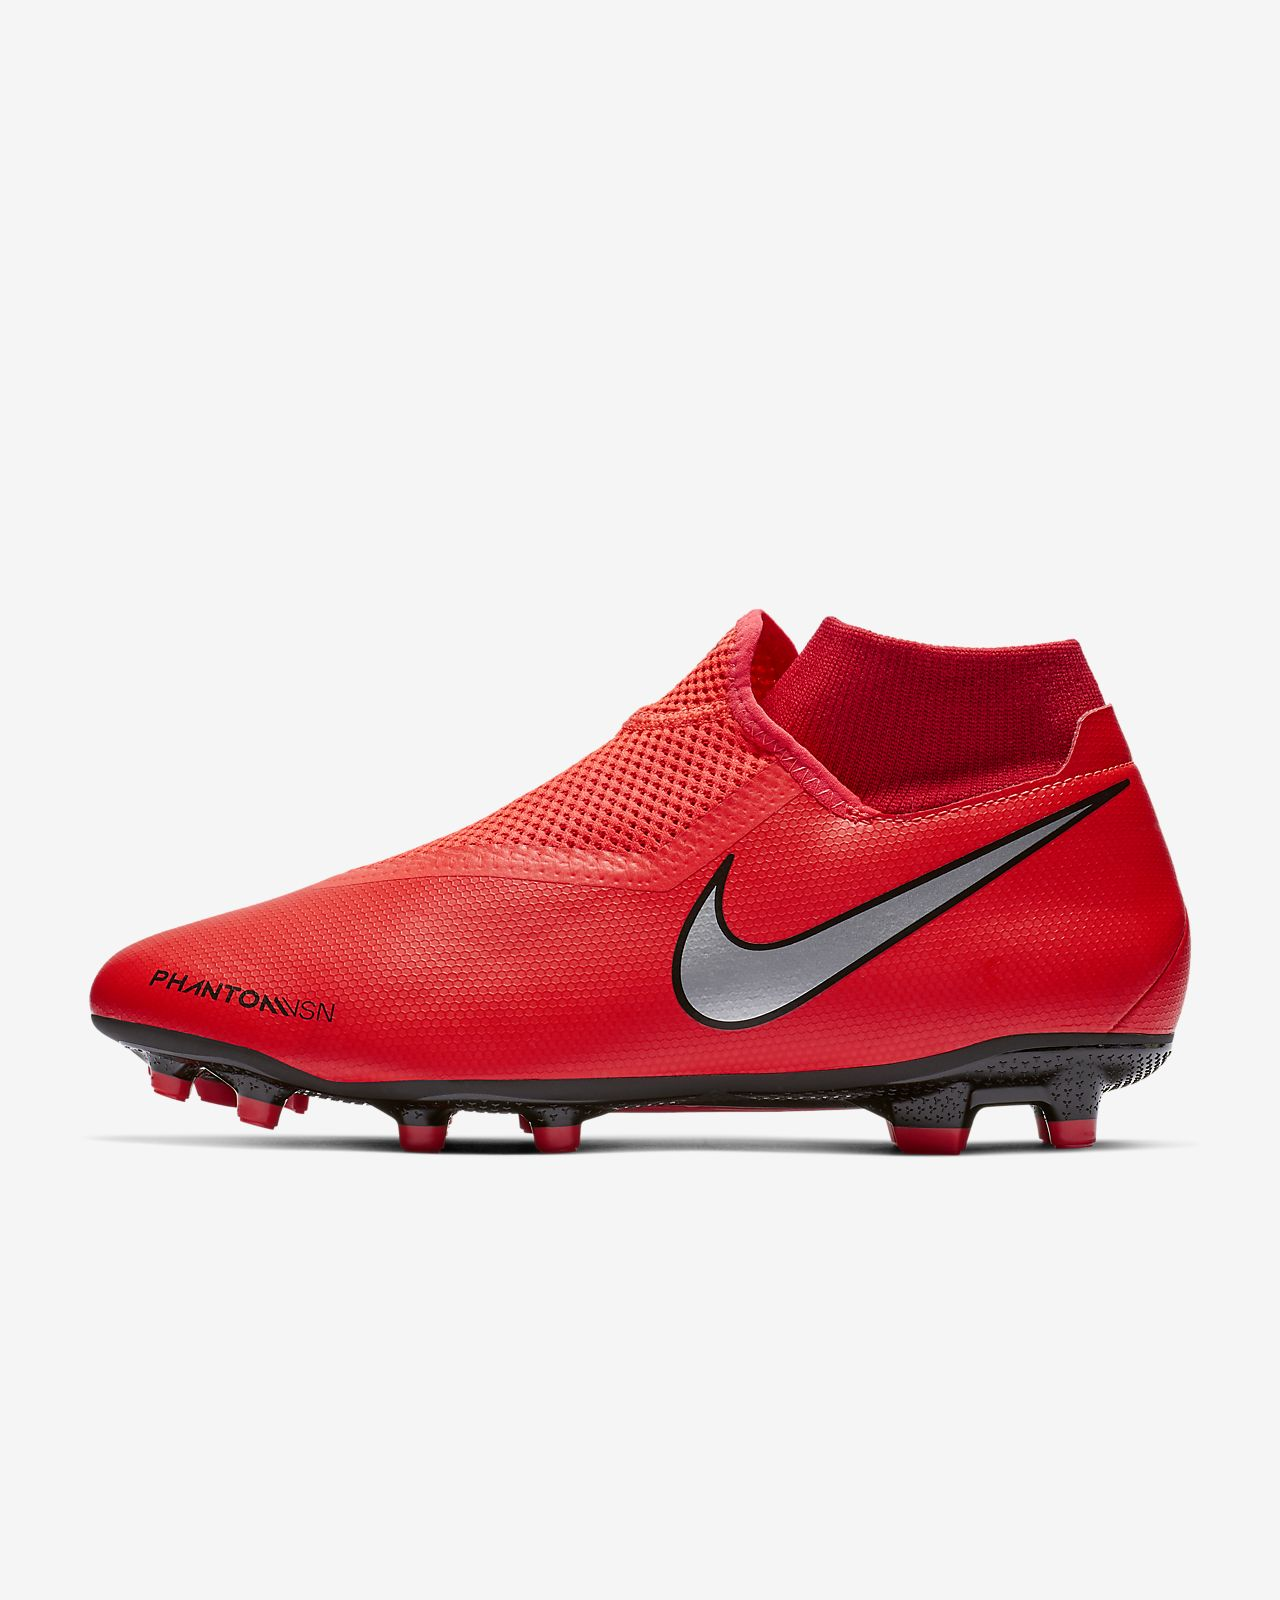 Nike PhantomVSN Academy Dynamic Fit Game Over MG Multi-Ground Soccer Cleat